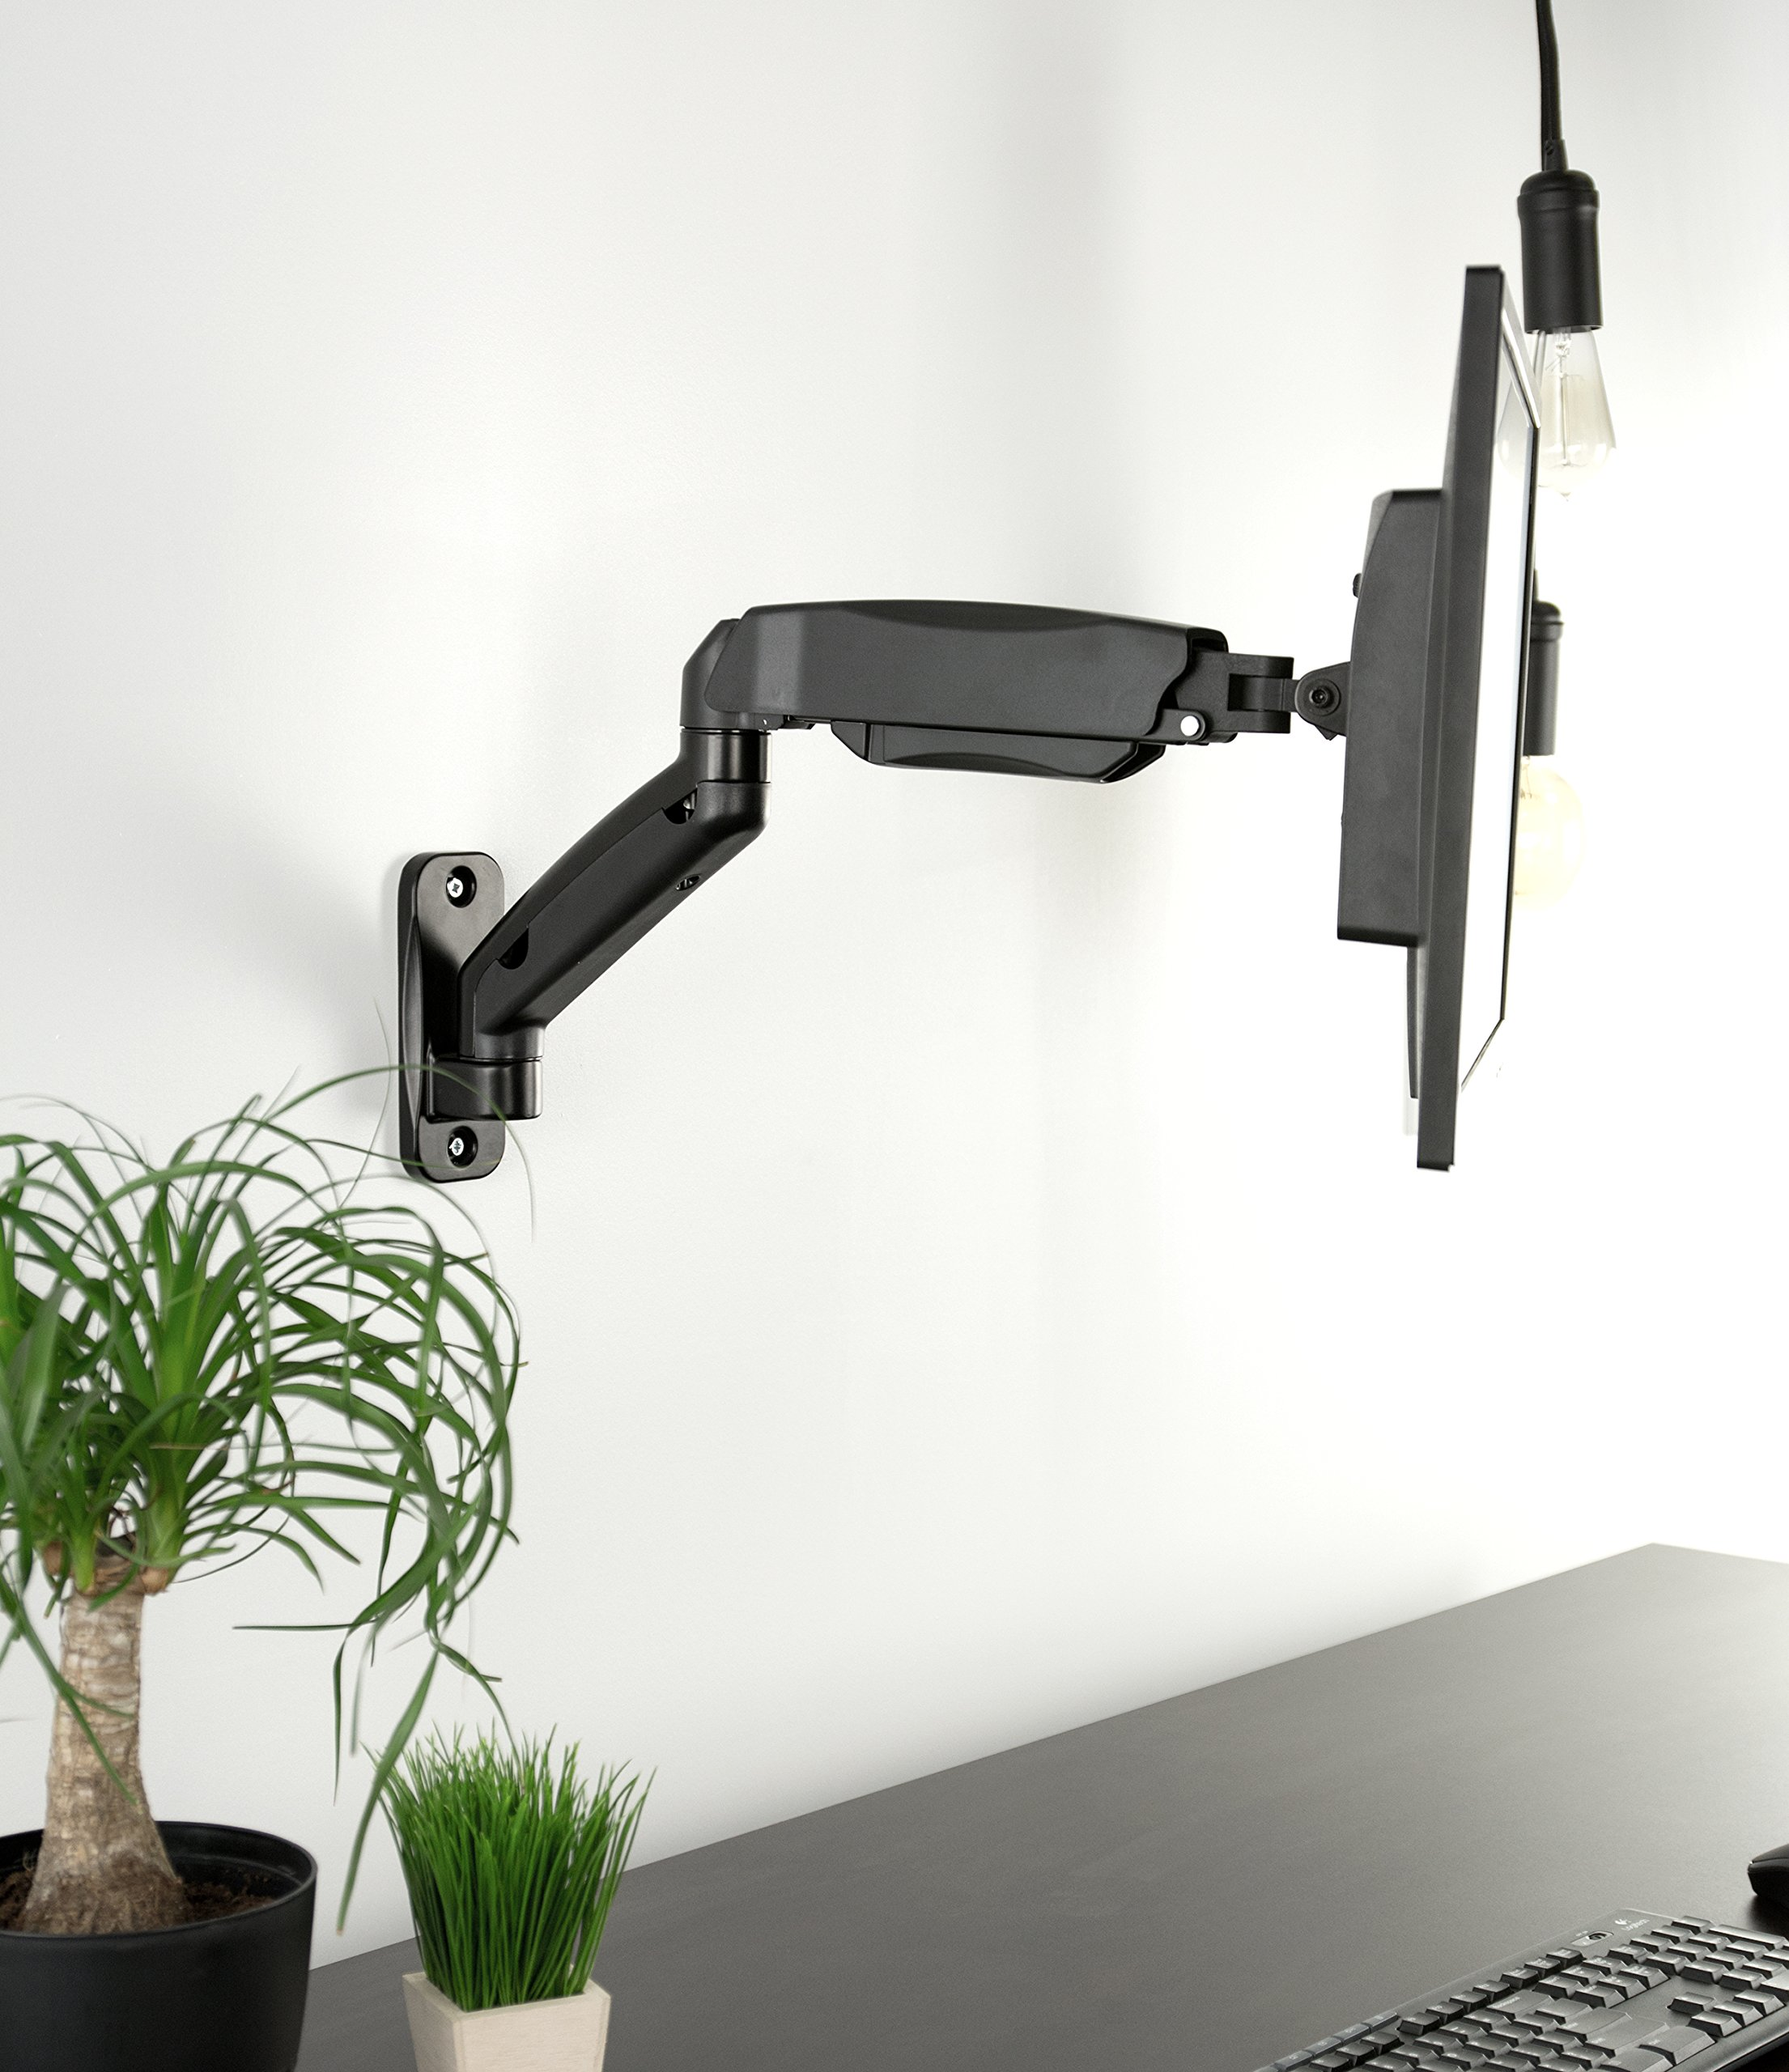 VIVO Black Height Adjustable Gas Spring Extended Arm Single Monitor Wall Mount Full Motion Articulating | fits 17'' to 27'' Screens (MOUNT-V001G) by VIVO (Image #3)